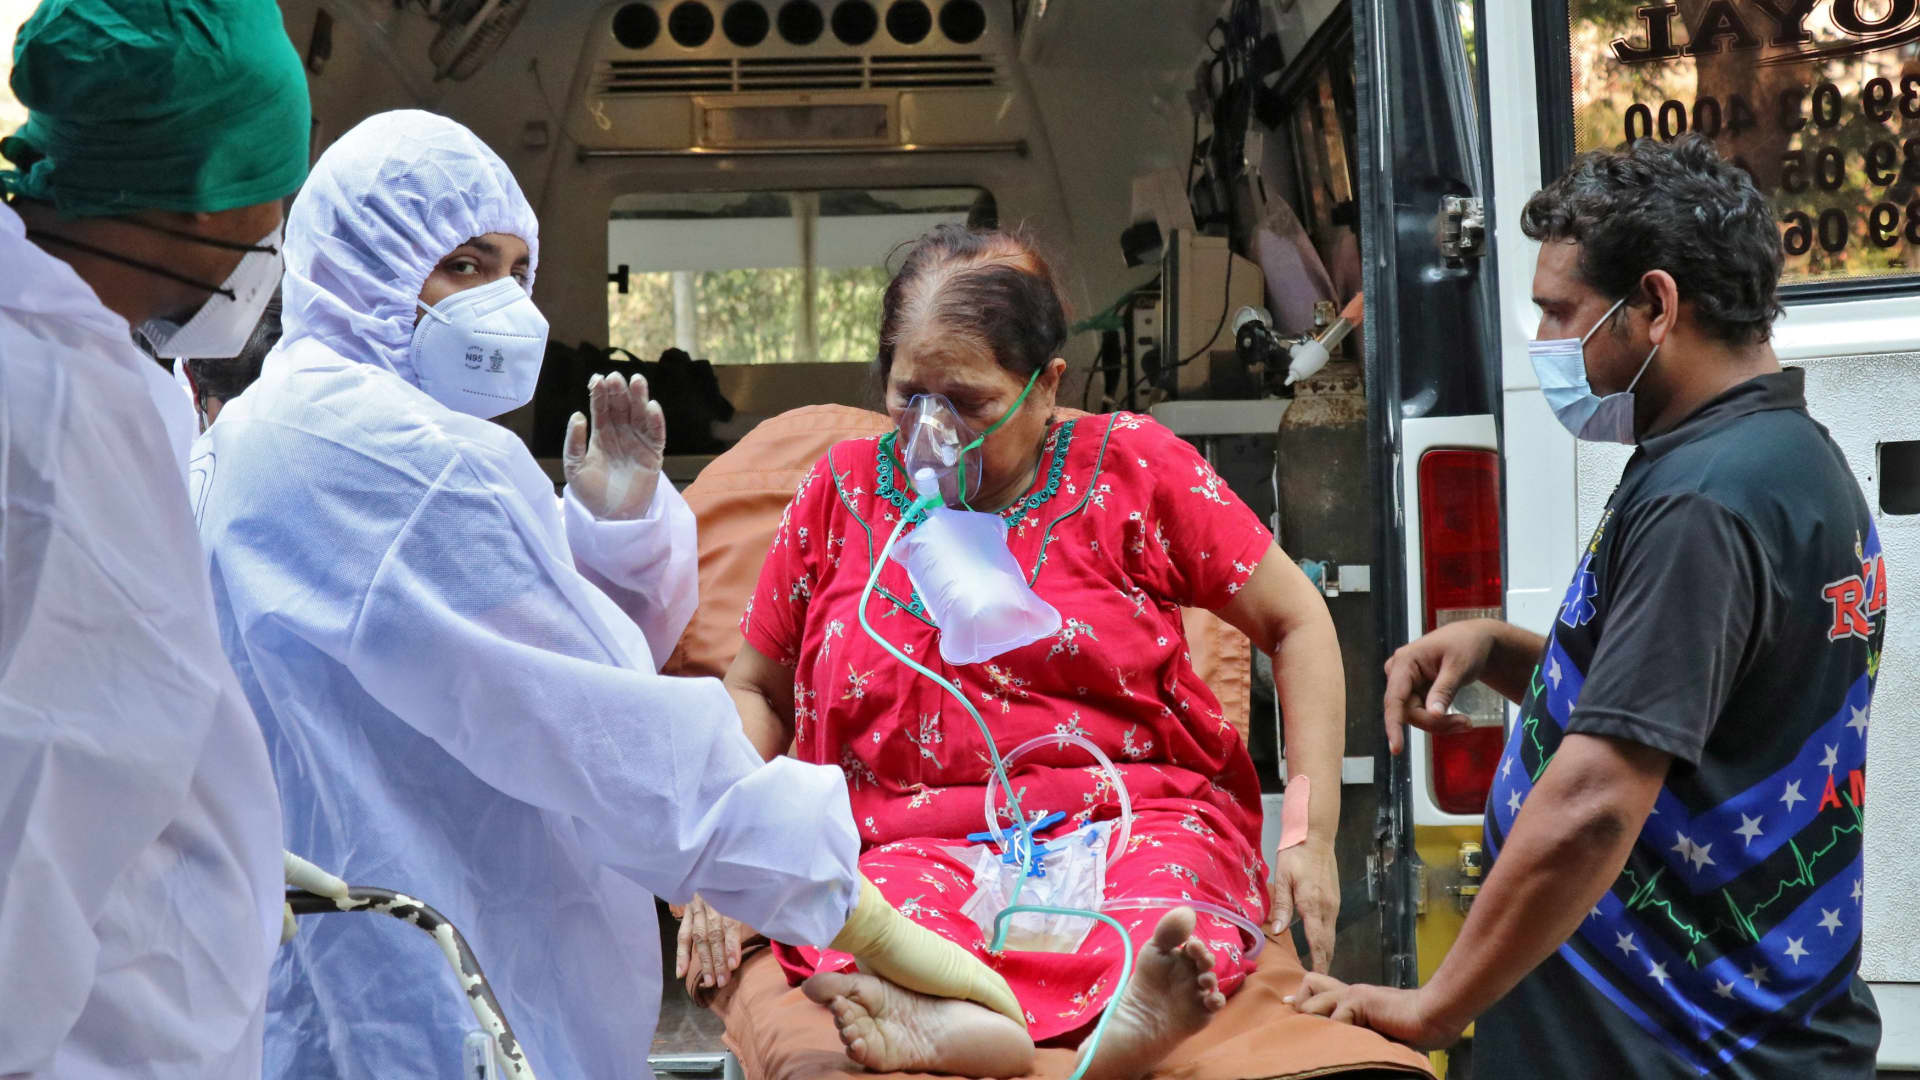 Healthcare workers and relatives carry a woman from an ambulance for treatment at a COVID-19 care facility, amidst the spread of the coronavirus disease (COVID-19) in Mumbai, India, May 4, 2021.